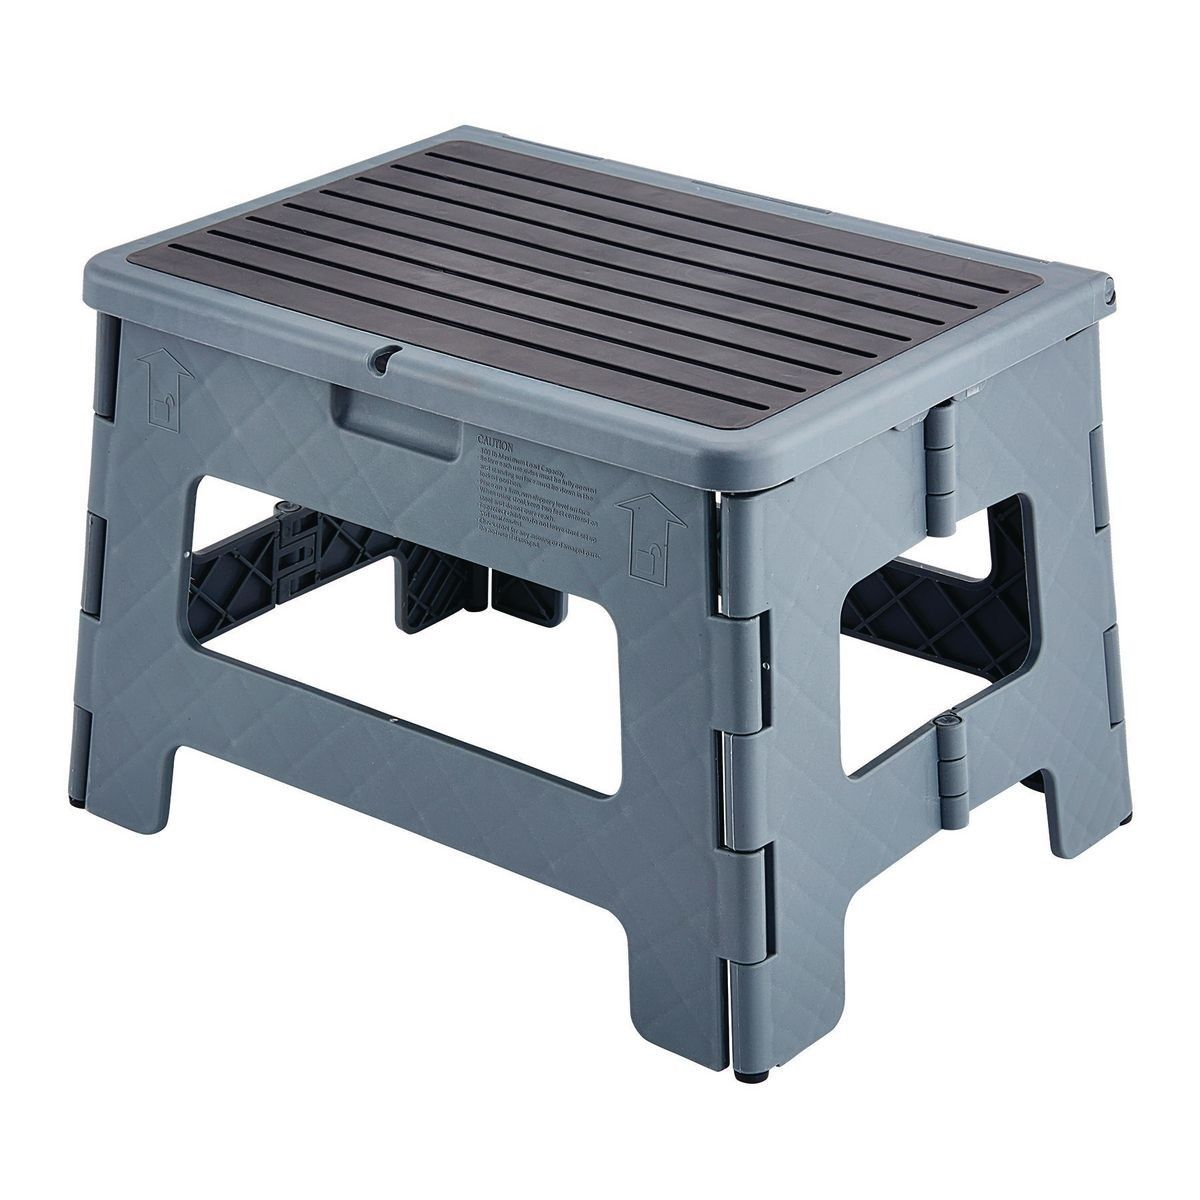 Awesome Only 7 99 For A Five Star Franklin Folding Step Stool Uwap Interior Chair Design Uwaporg